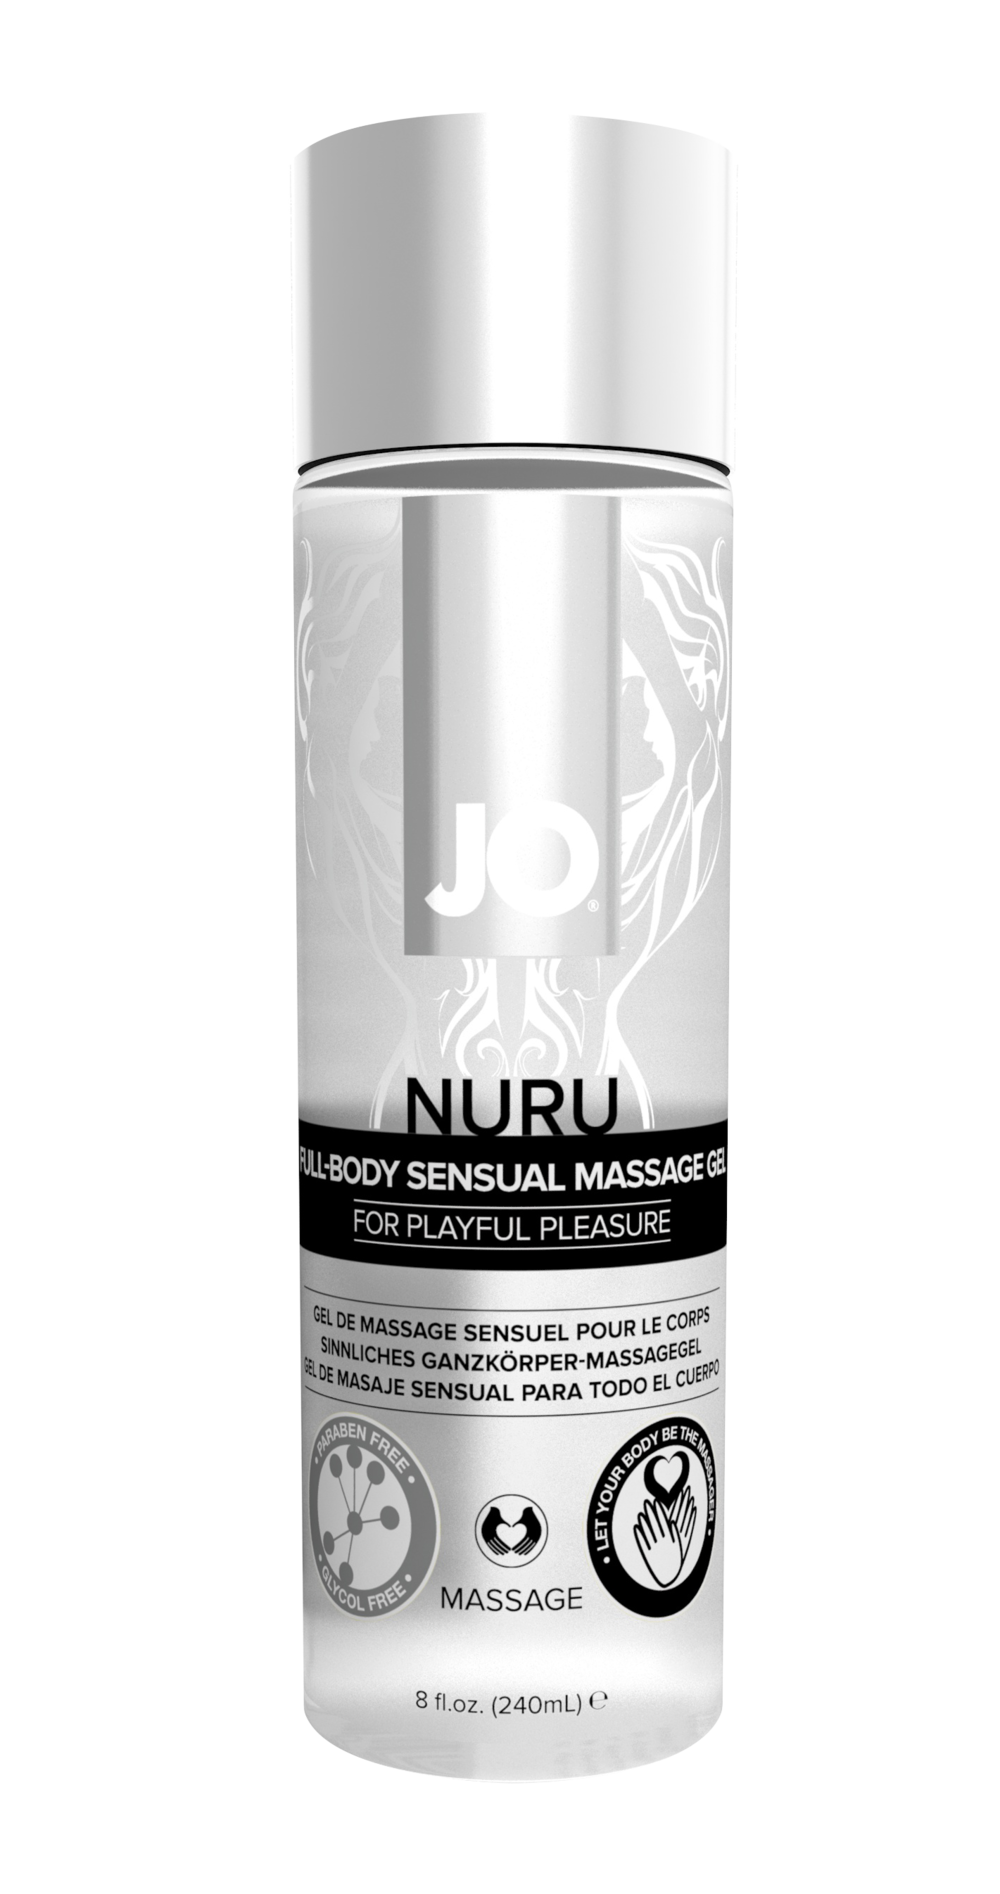 48005 - JO NURU - FULL BODY SENSUAL MASSAGE GEL - 8fl.oz 240mL C (RGB).png